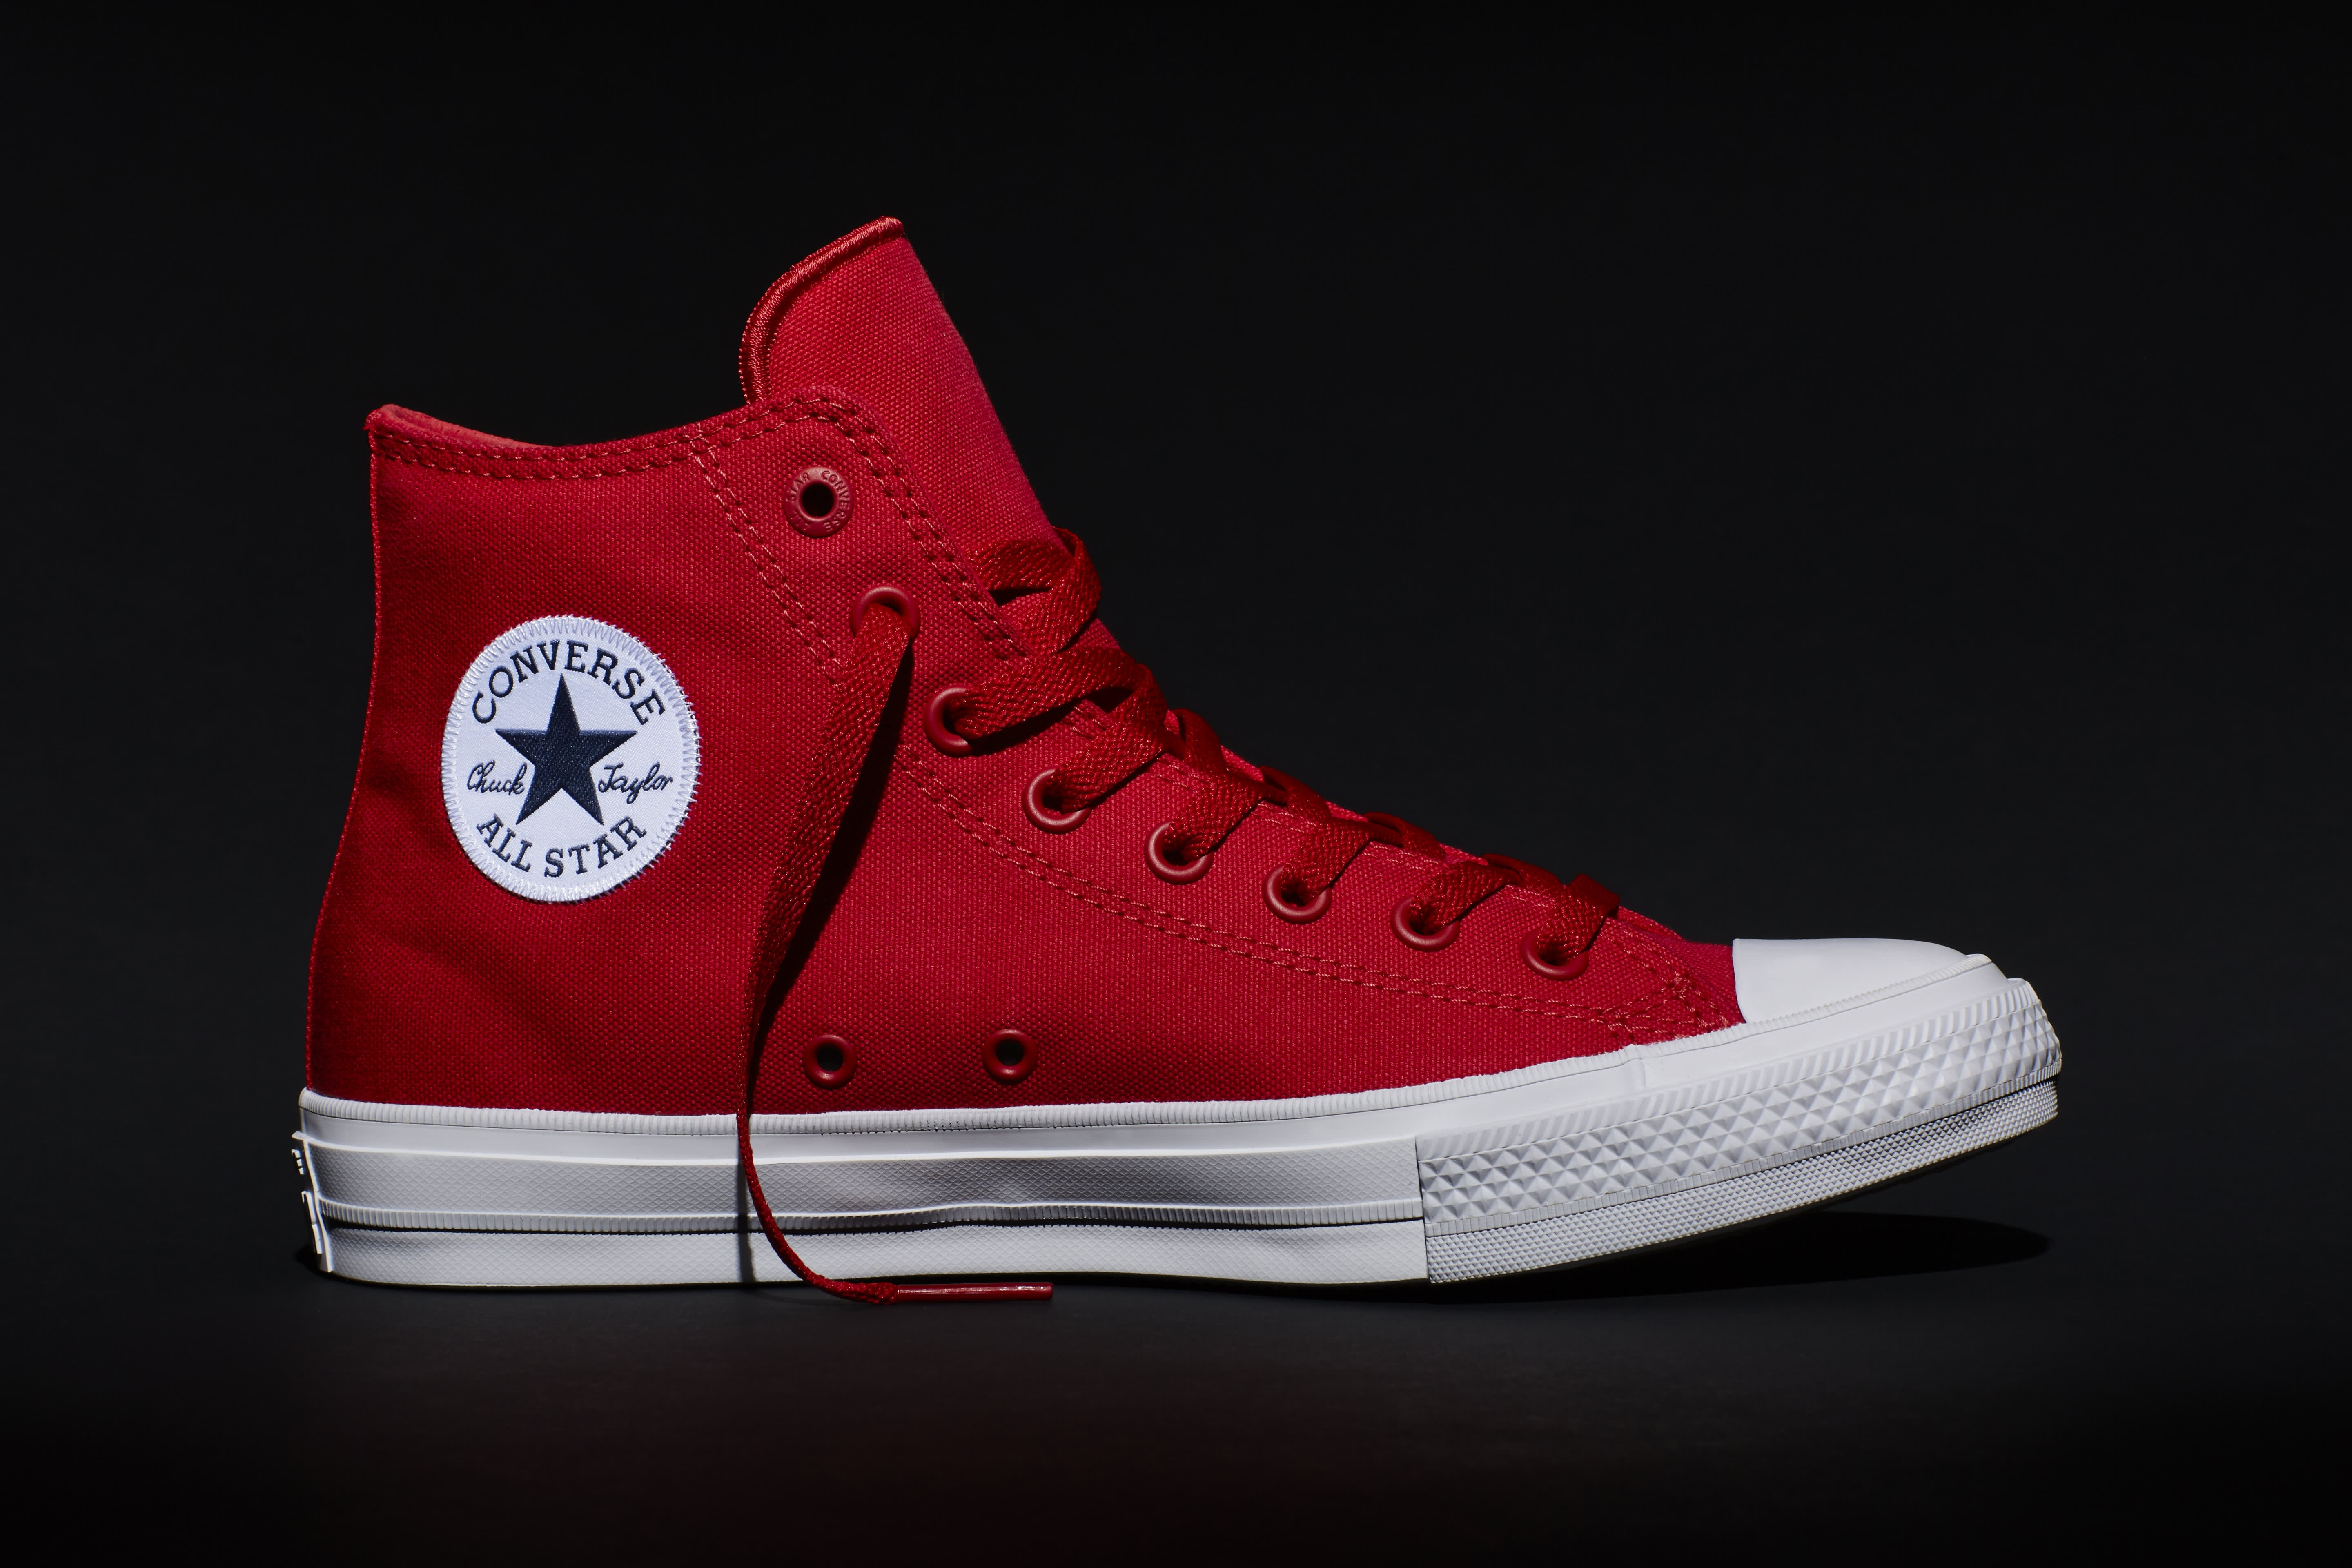 a88410c072df Converse makes first change in a century to the Chuck Taylor All Star  sneaker